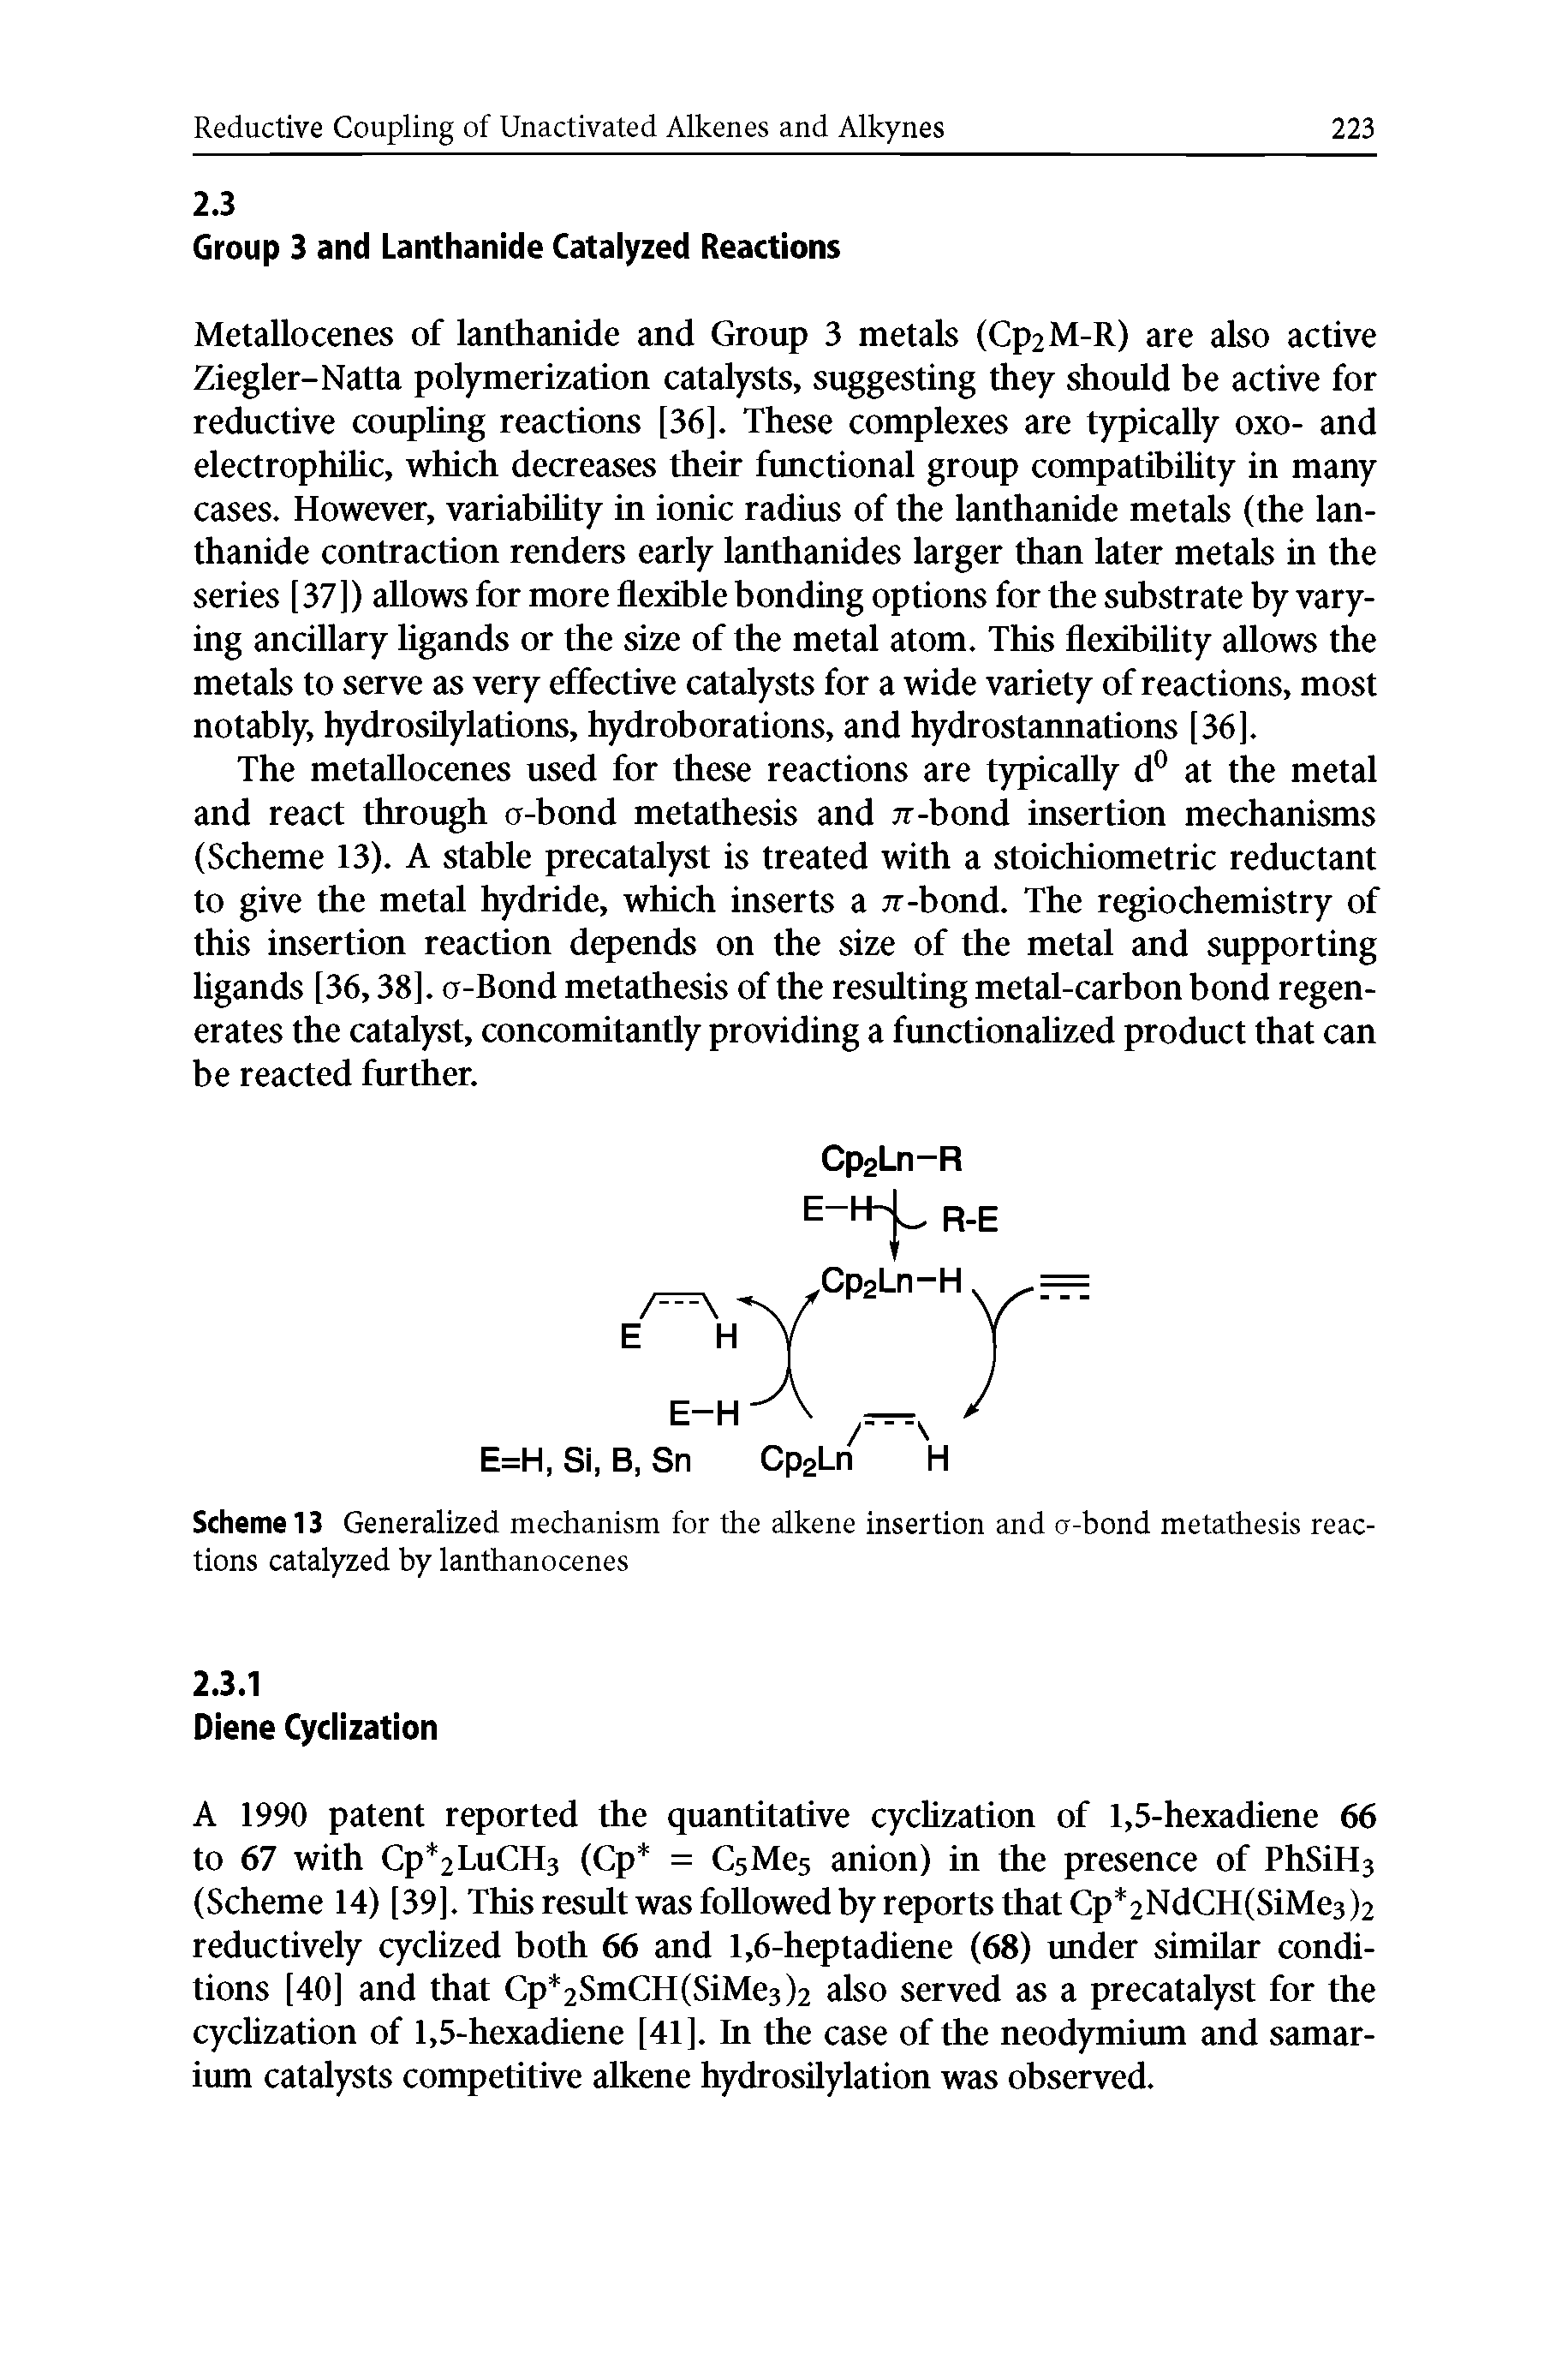 "Scheme 13 <a href=""/info/the_general_mechanism"">Generalized mechanism</a> for the alkene insertion and cr-<a href=""/info/a_bond_metathesis_reaction"">bond metathesis reactions</a> catalyzed by lanthanocenes"